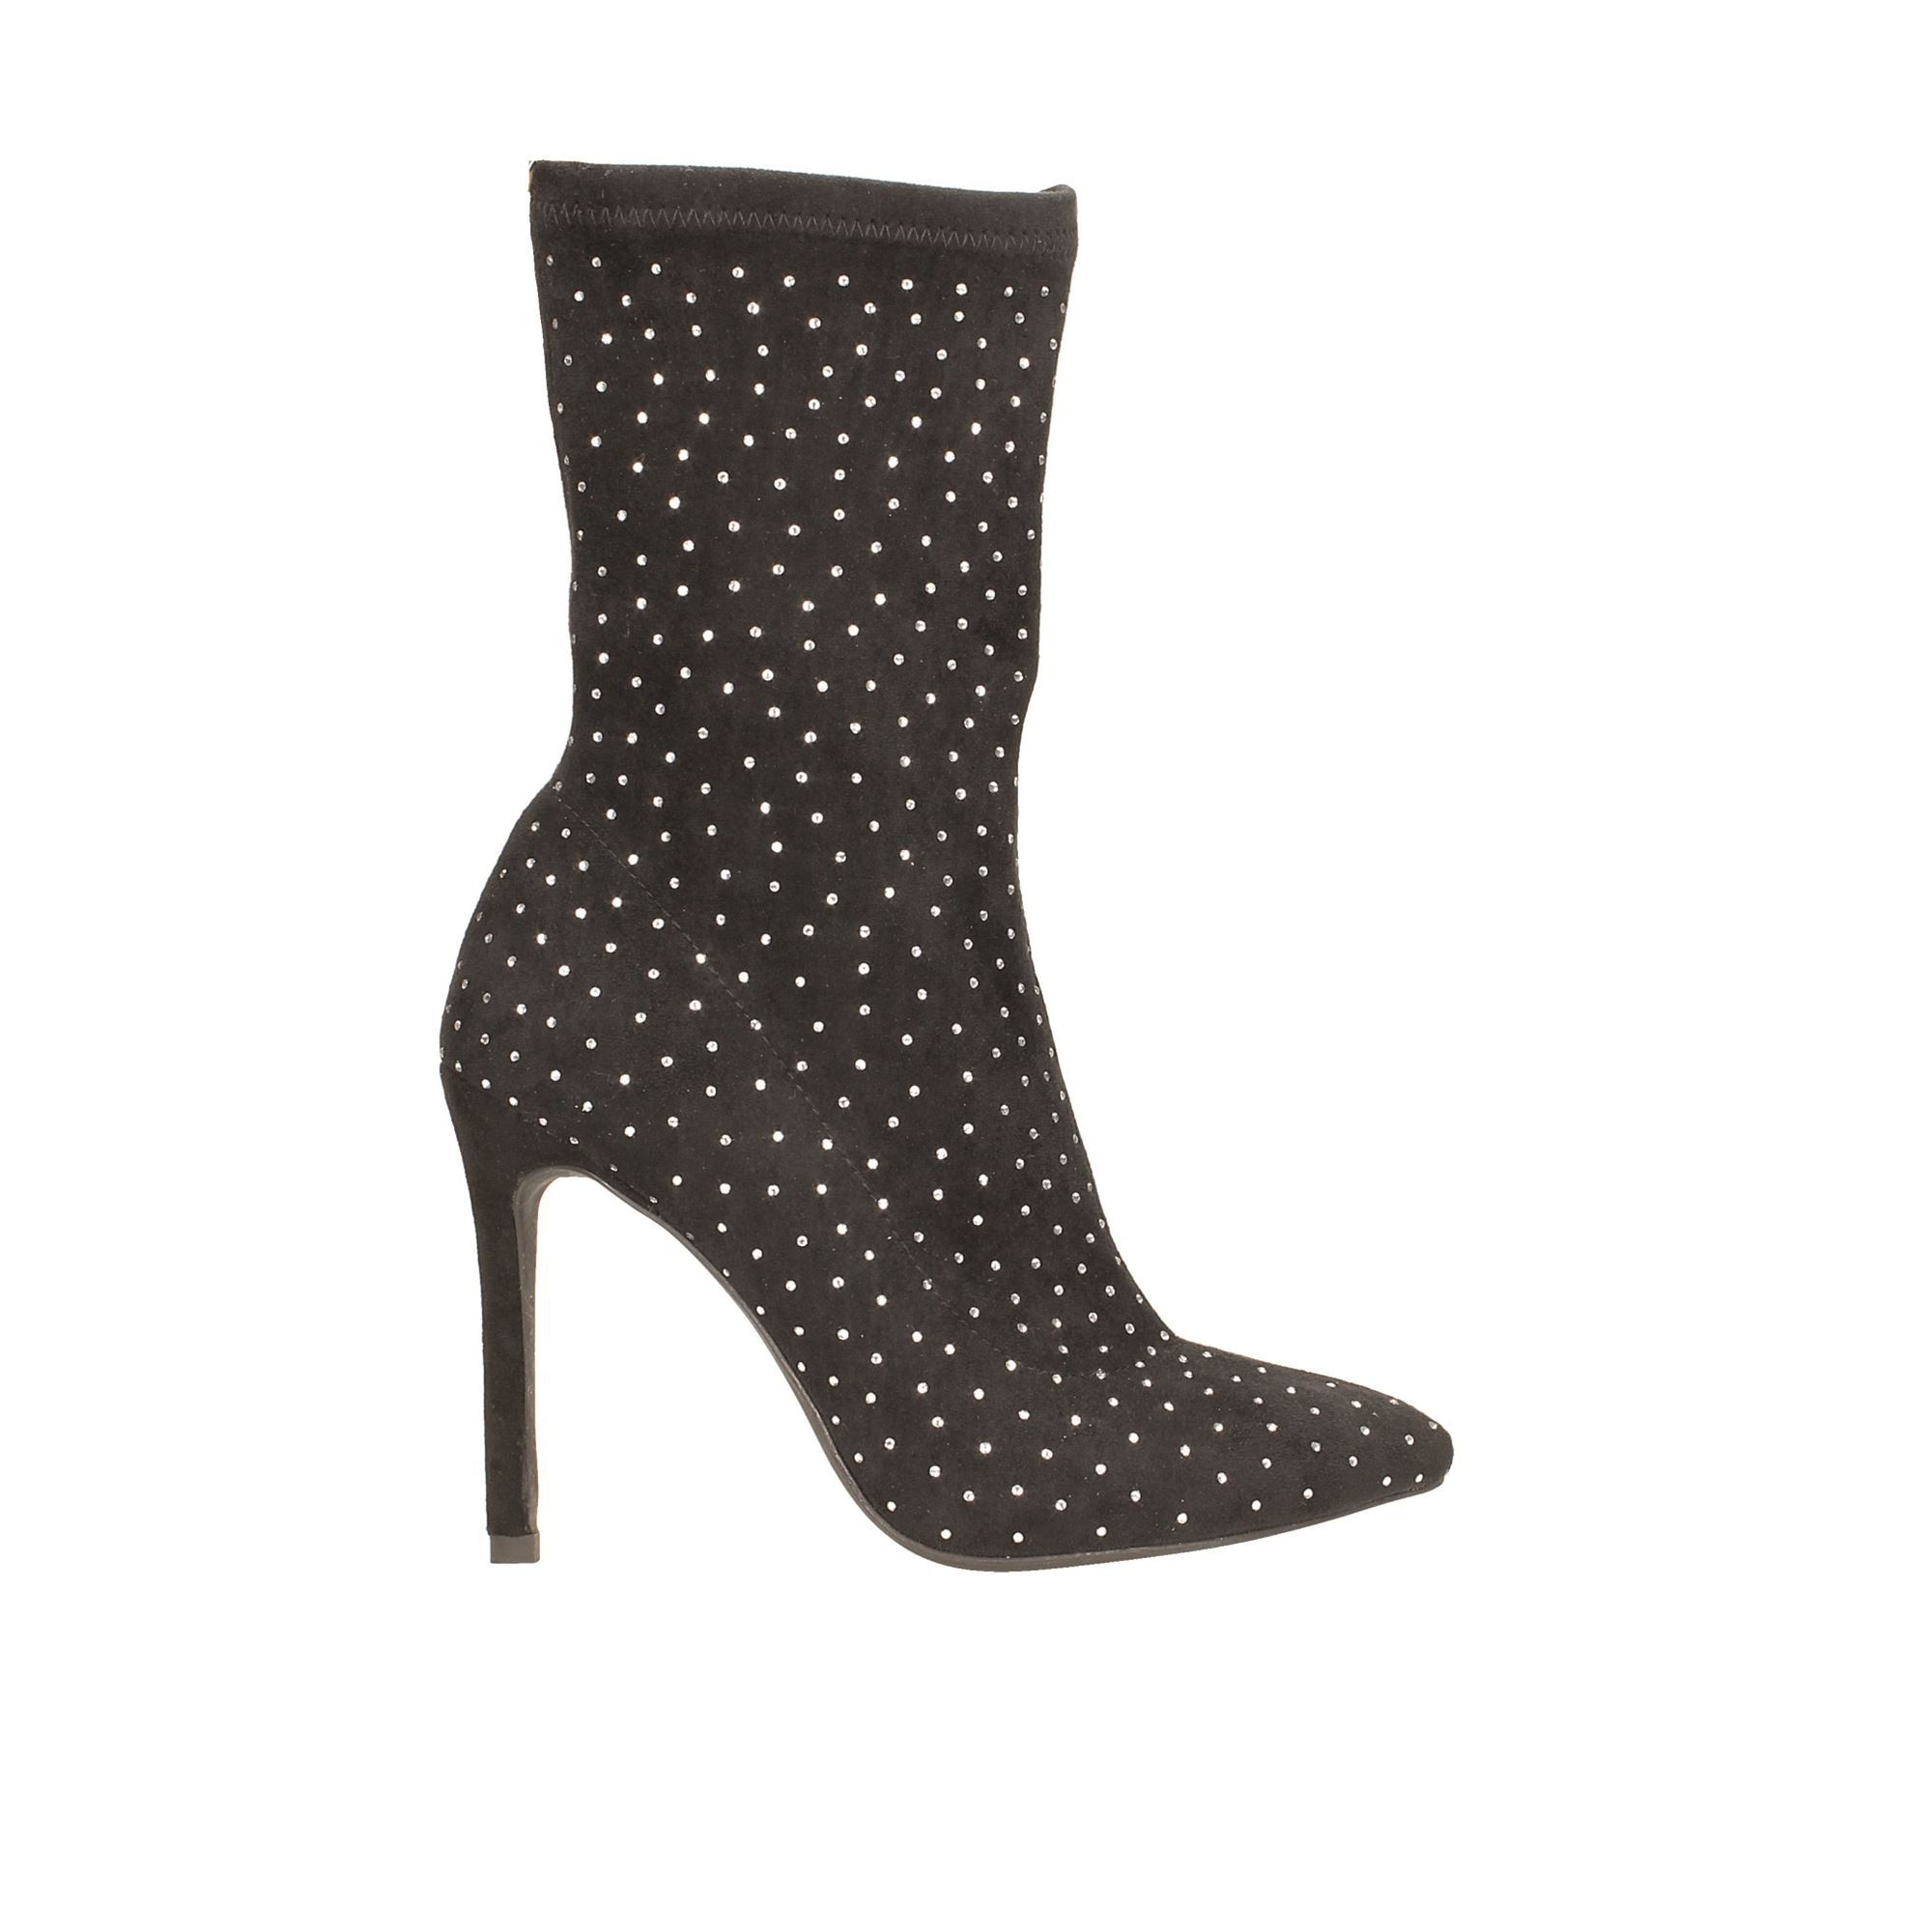 Tata Italia Shoes Woman Stivaletti Black 1903X-117